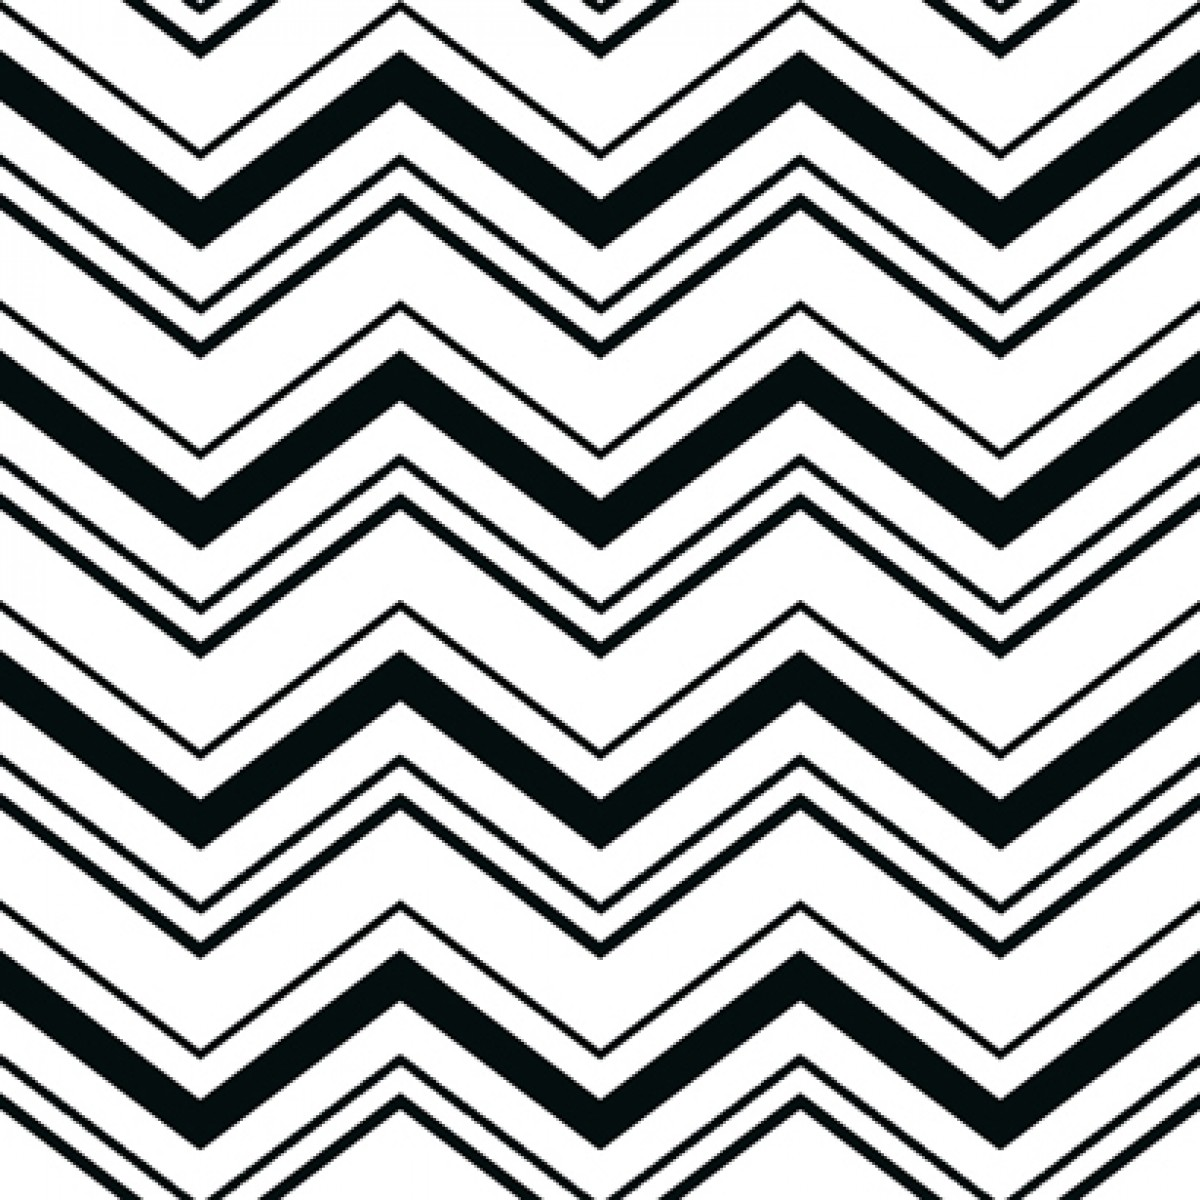 Black And White Geometric Wallpaper | www.imgkid.com - The ...